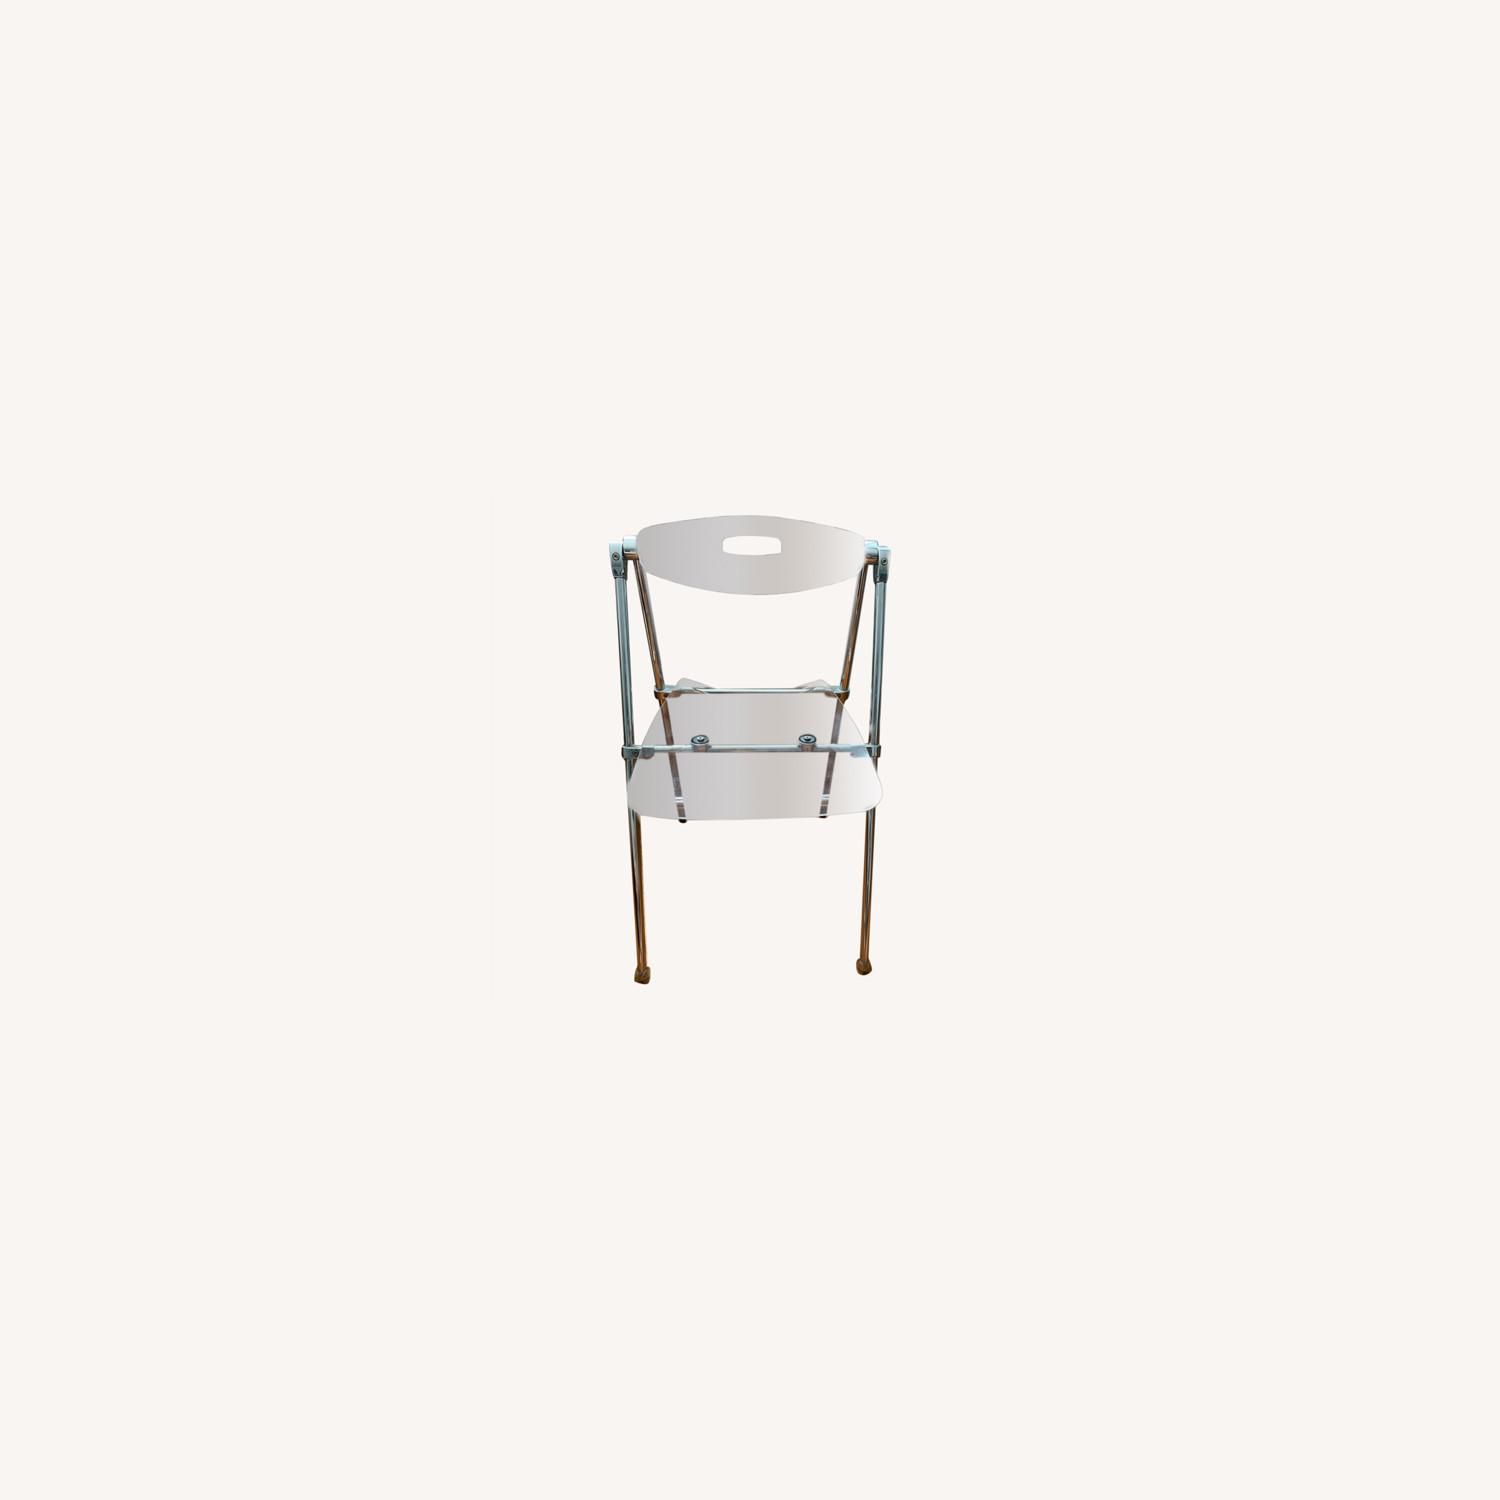 Acrylic Folding Dining Chair Moveable Backrest - image-0